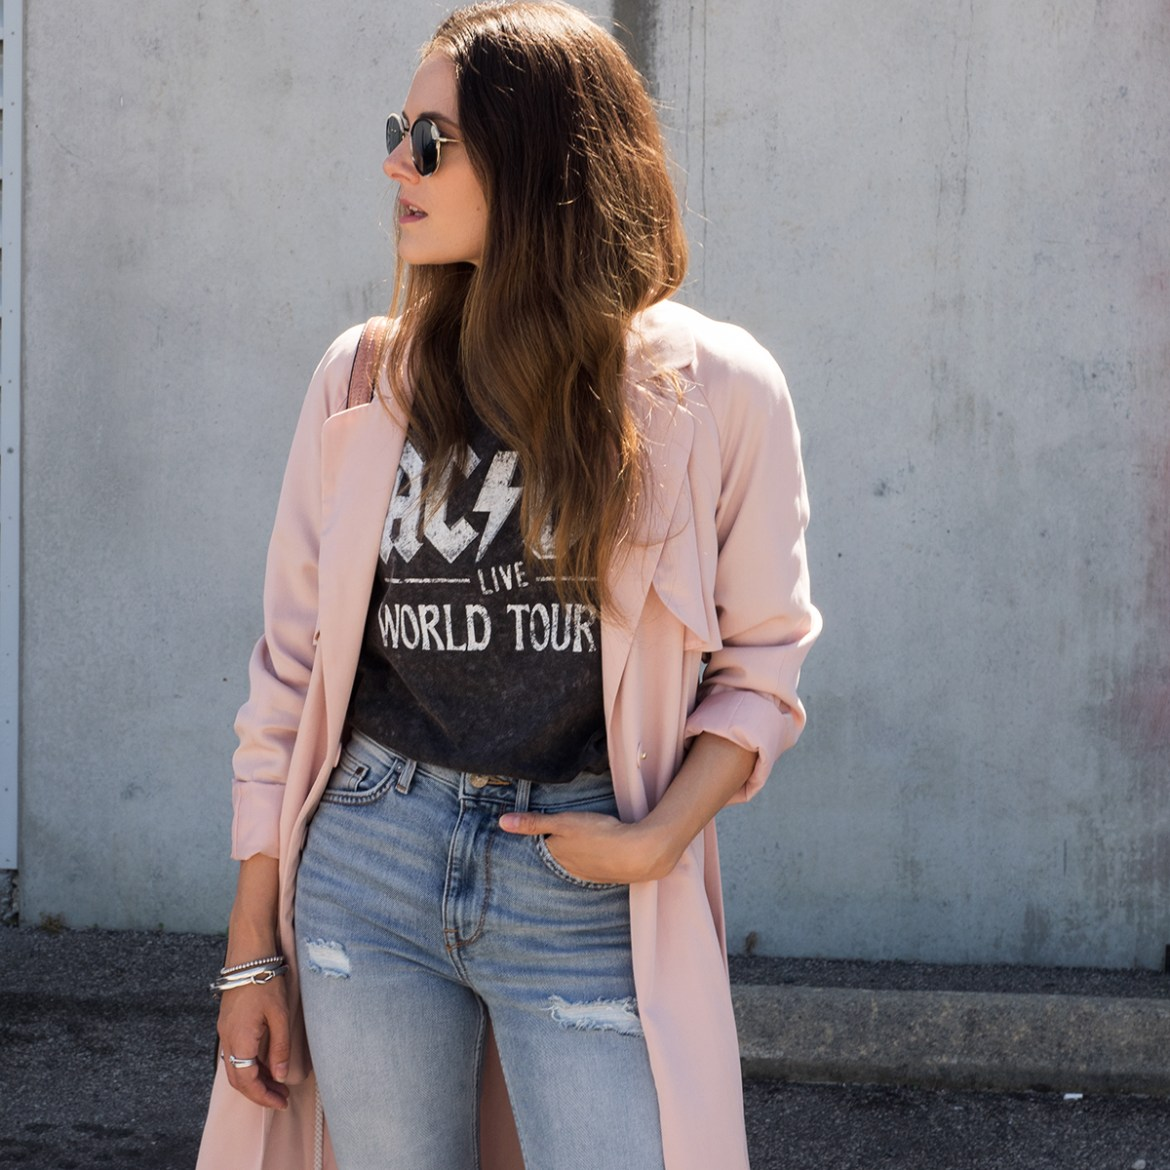 H&M street style for Perth new H&M store on Jenelle, Inspiring Wit australian fashion blogger. In pink trnech coat, ACDC vintage band tee and jeans.